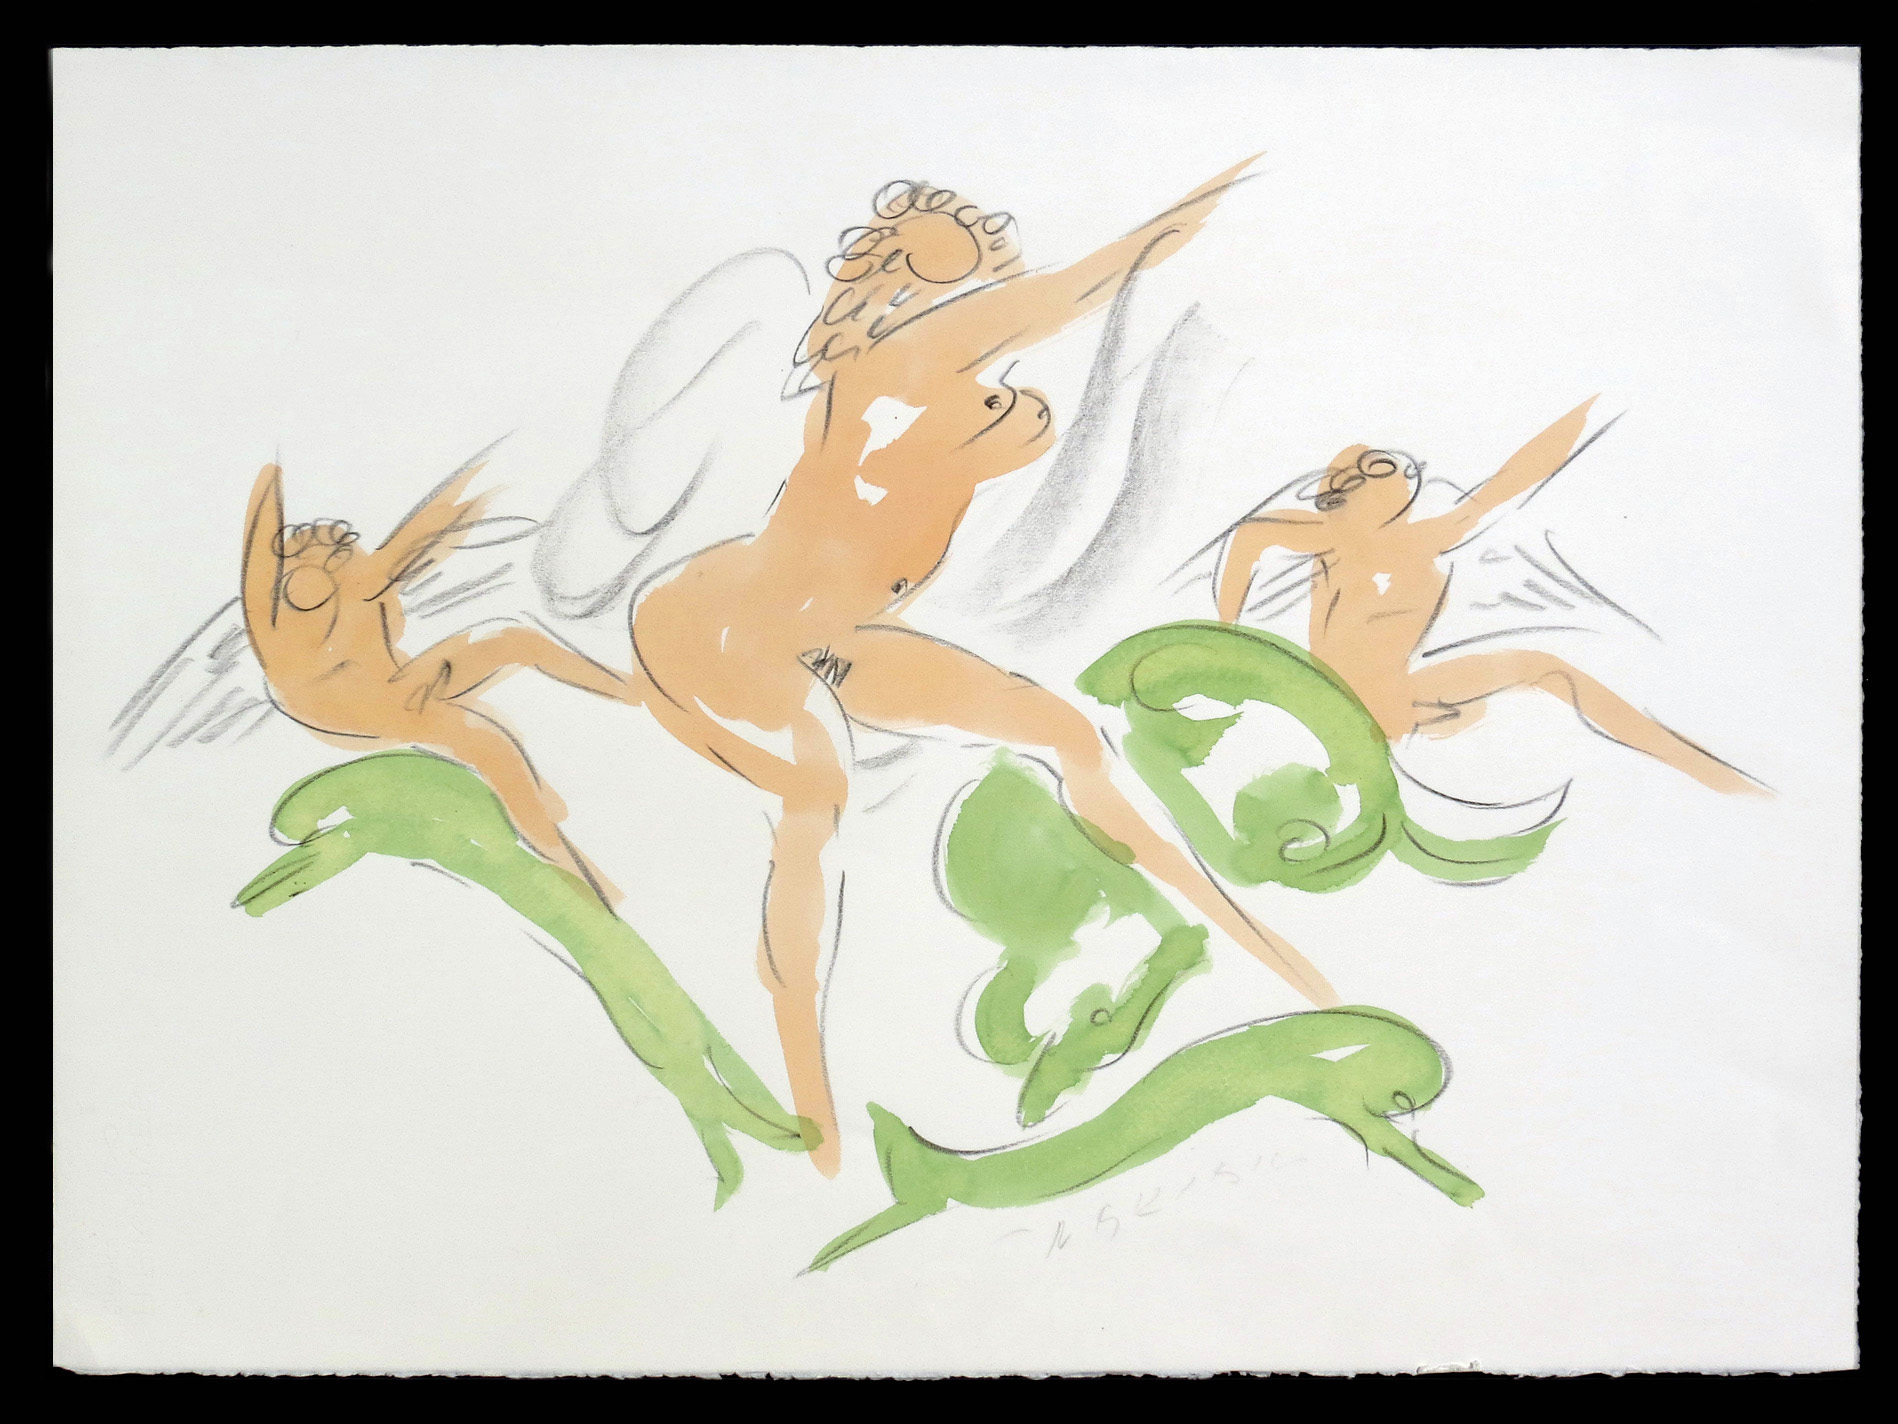 """Nymph with Cupids and Dolphins  1982-85, black litho crayon and colored wash on paper 20 7/8 x 28 3/8"""" Nakian Estate 60.80-158"""